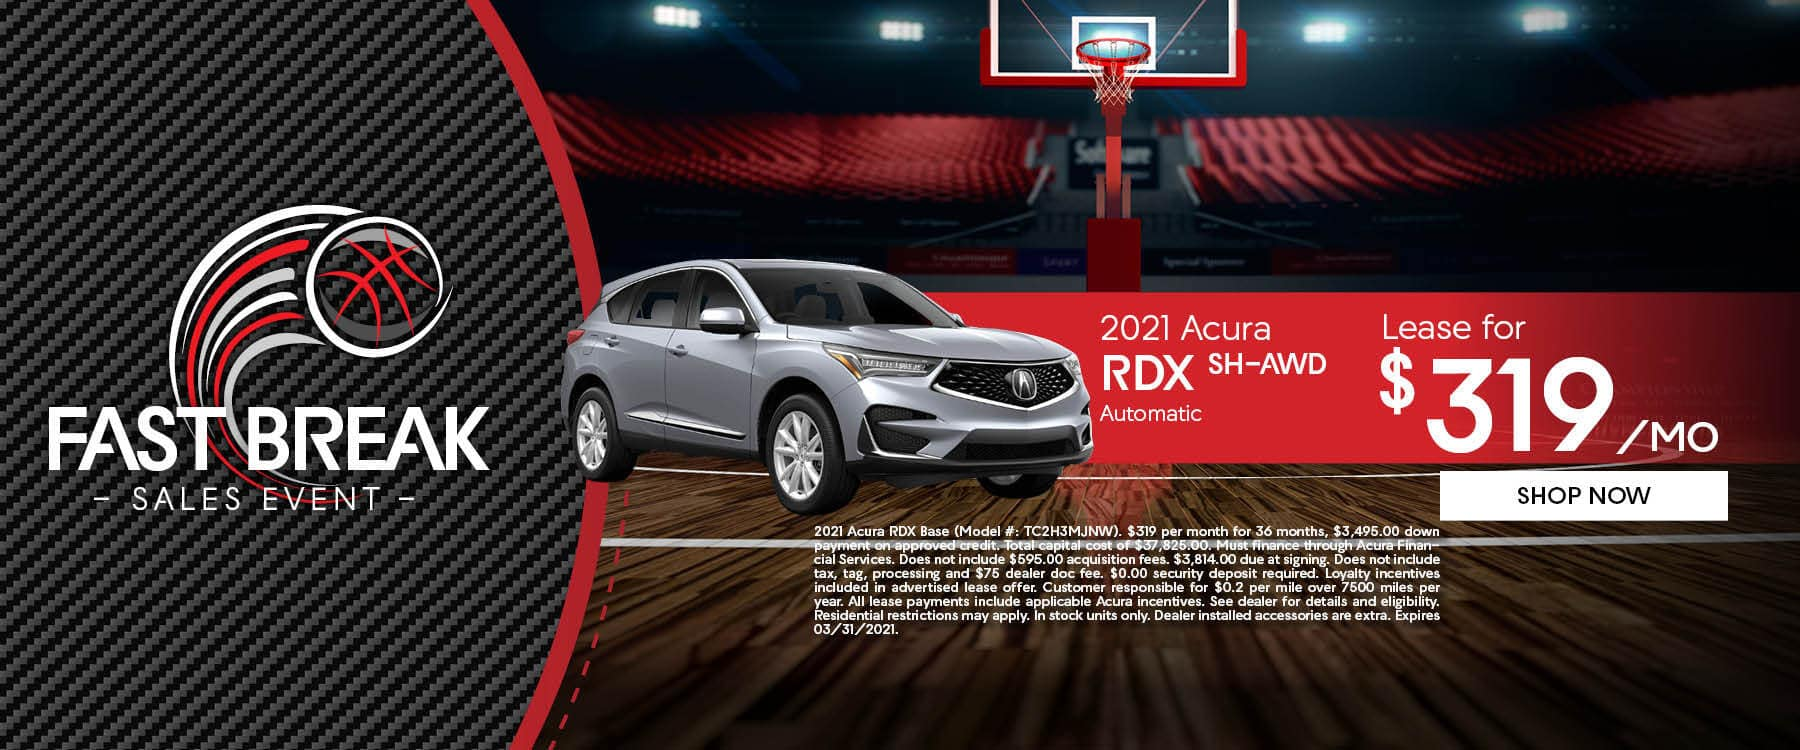 Fast Break Sales Event at Friendly Acura of Middletown!